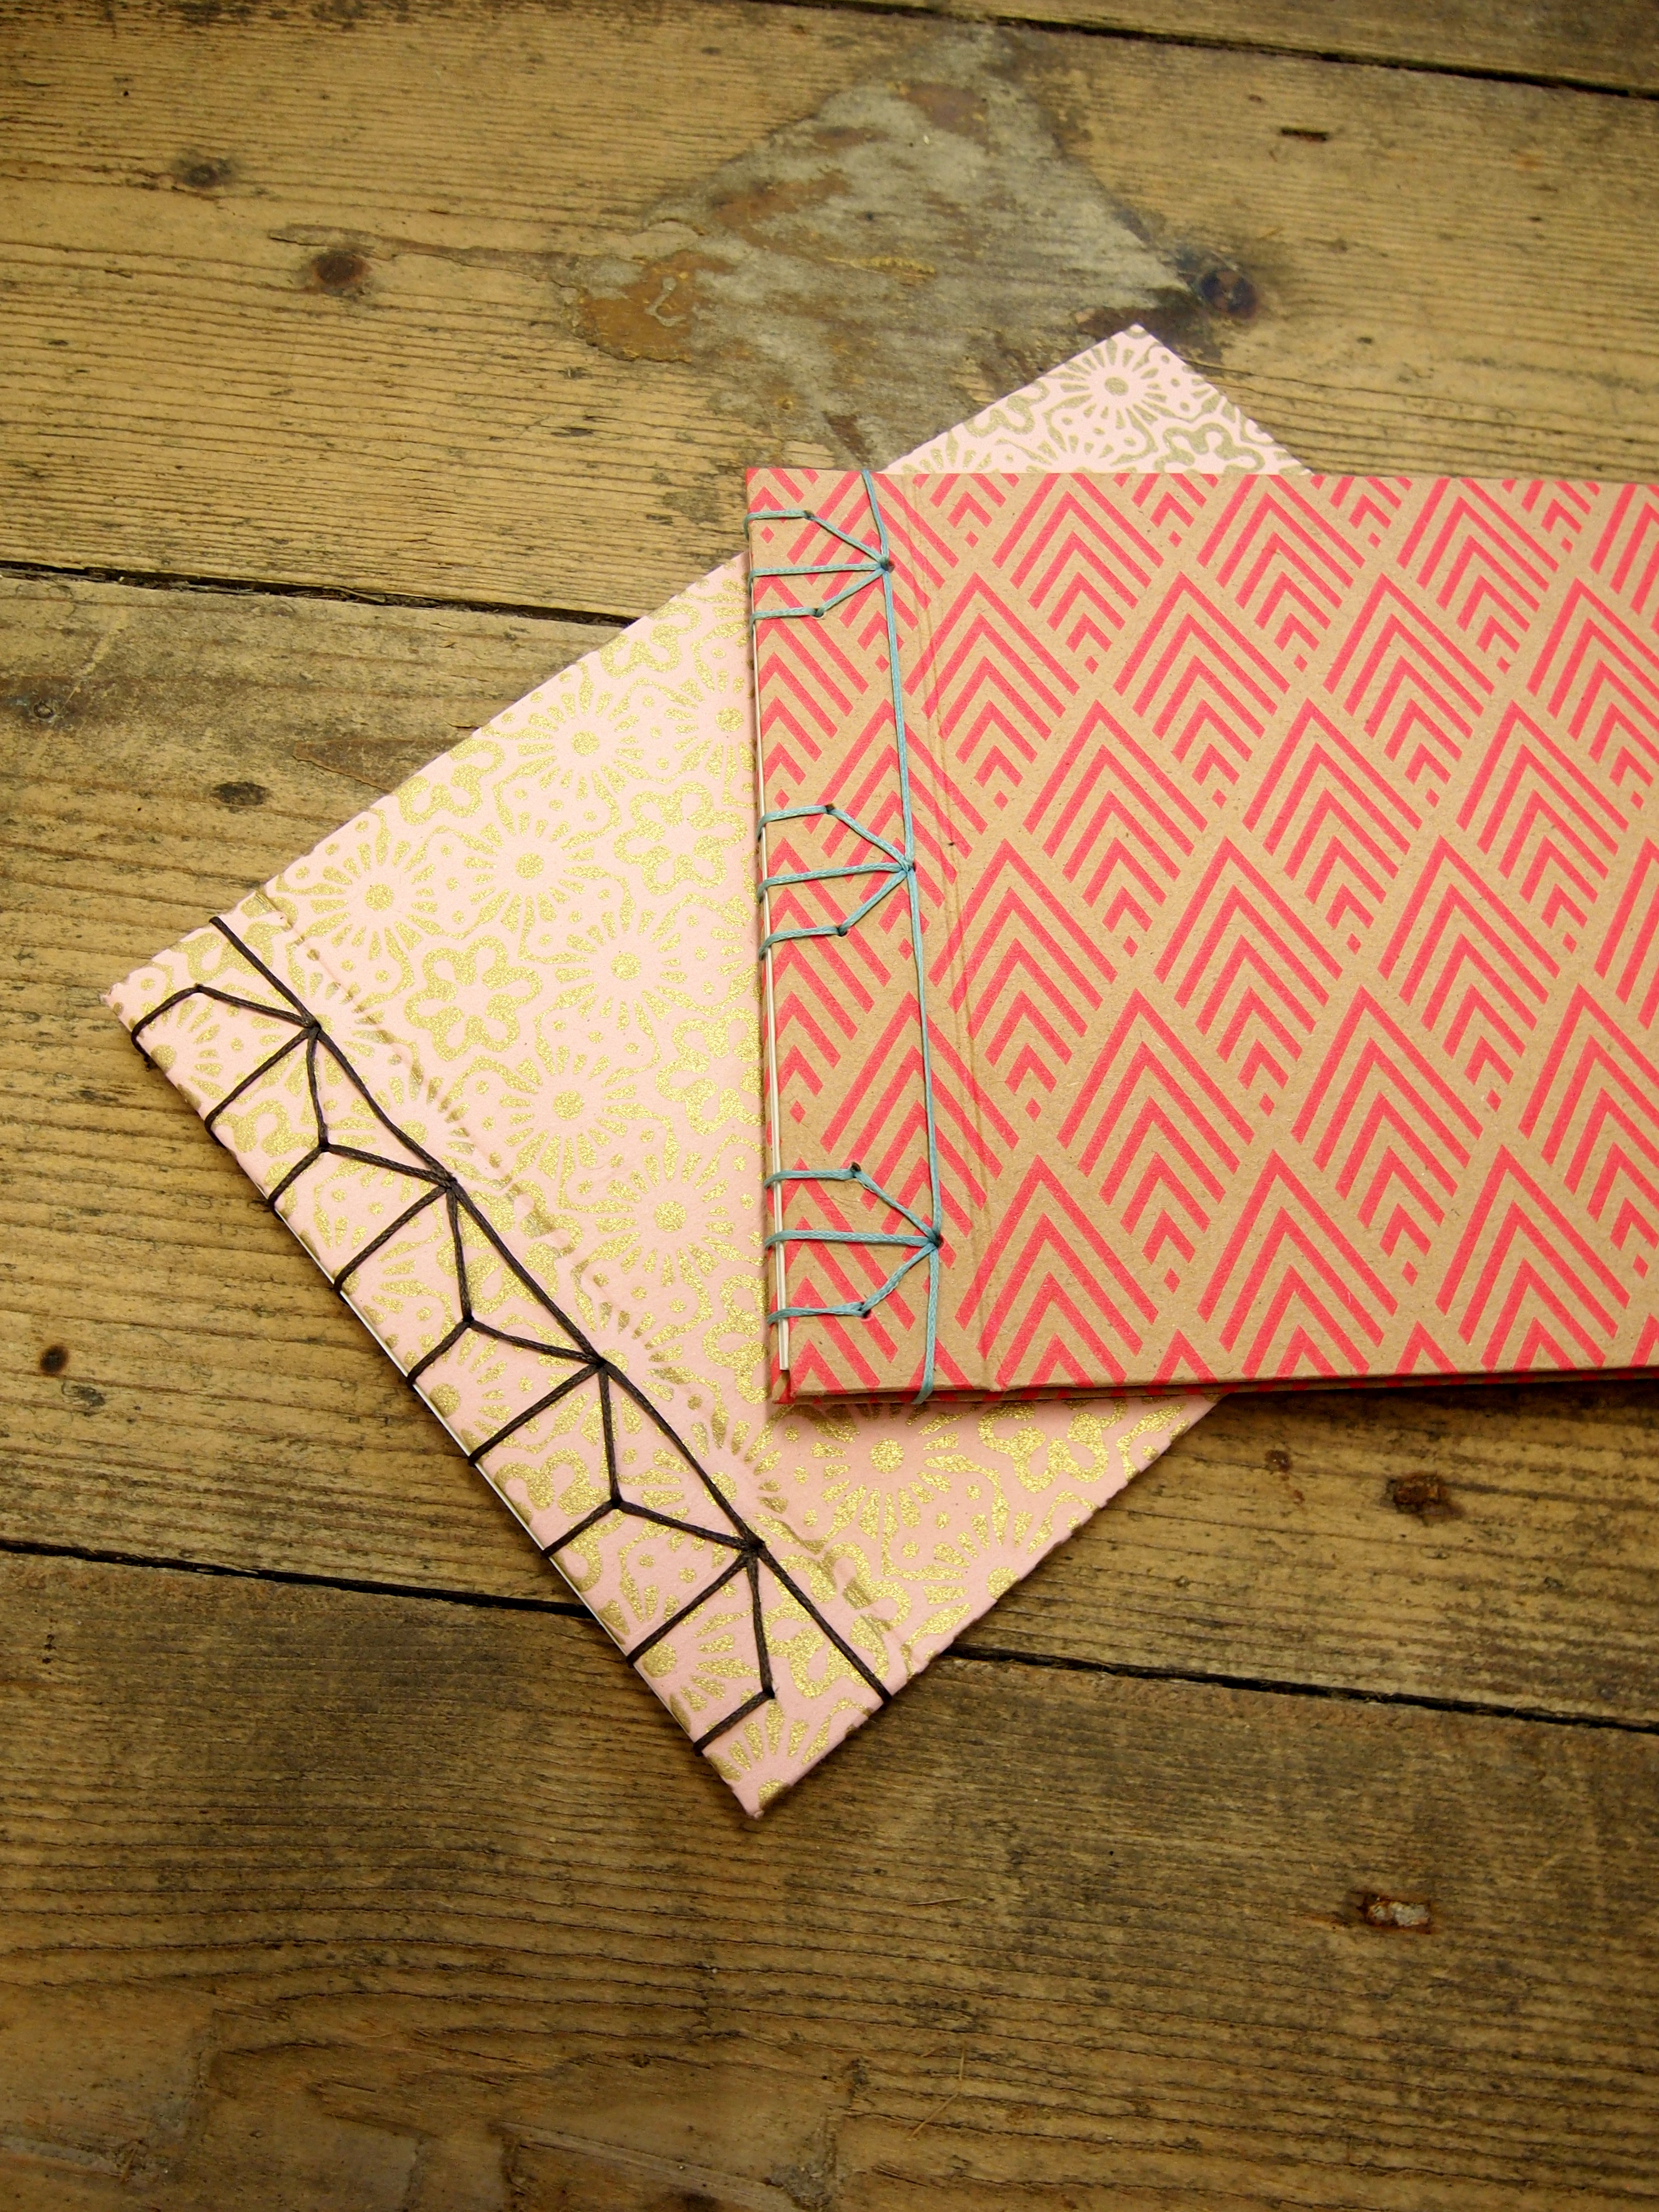 Japanese Bookbinding Workshop